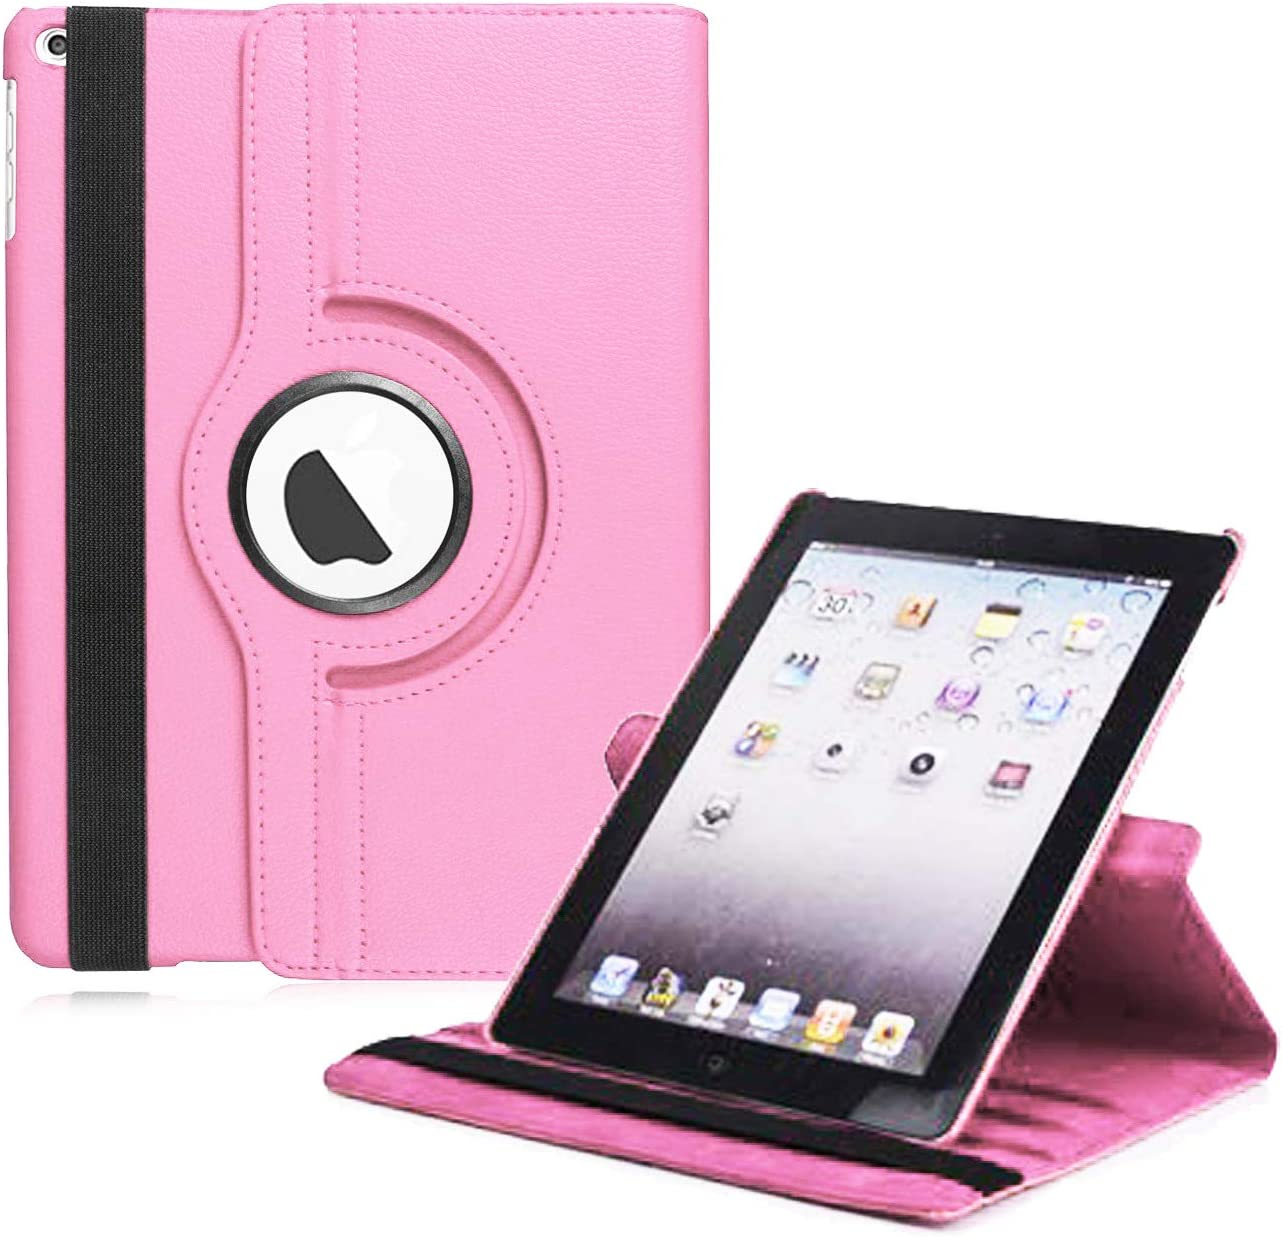 "New iPad 2017 9.7"" / iPad Air 2 Leather Case,360 Degree Rotating Stand Smart Cover with Auto Sleep Wake for Apple iPad Air or New iPad 9.7 Inch 2017 Tablet (Pink)"